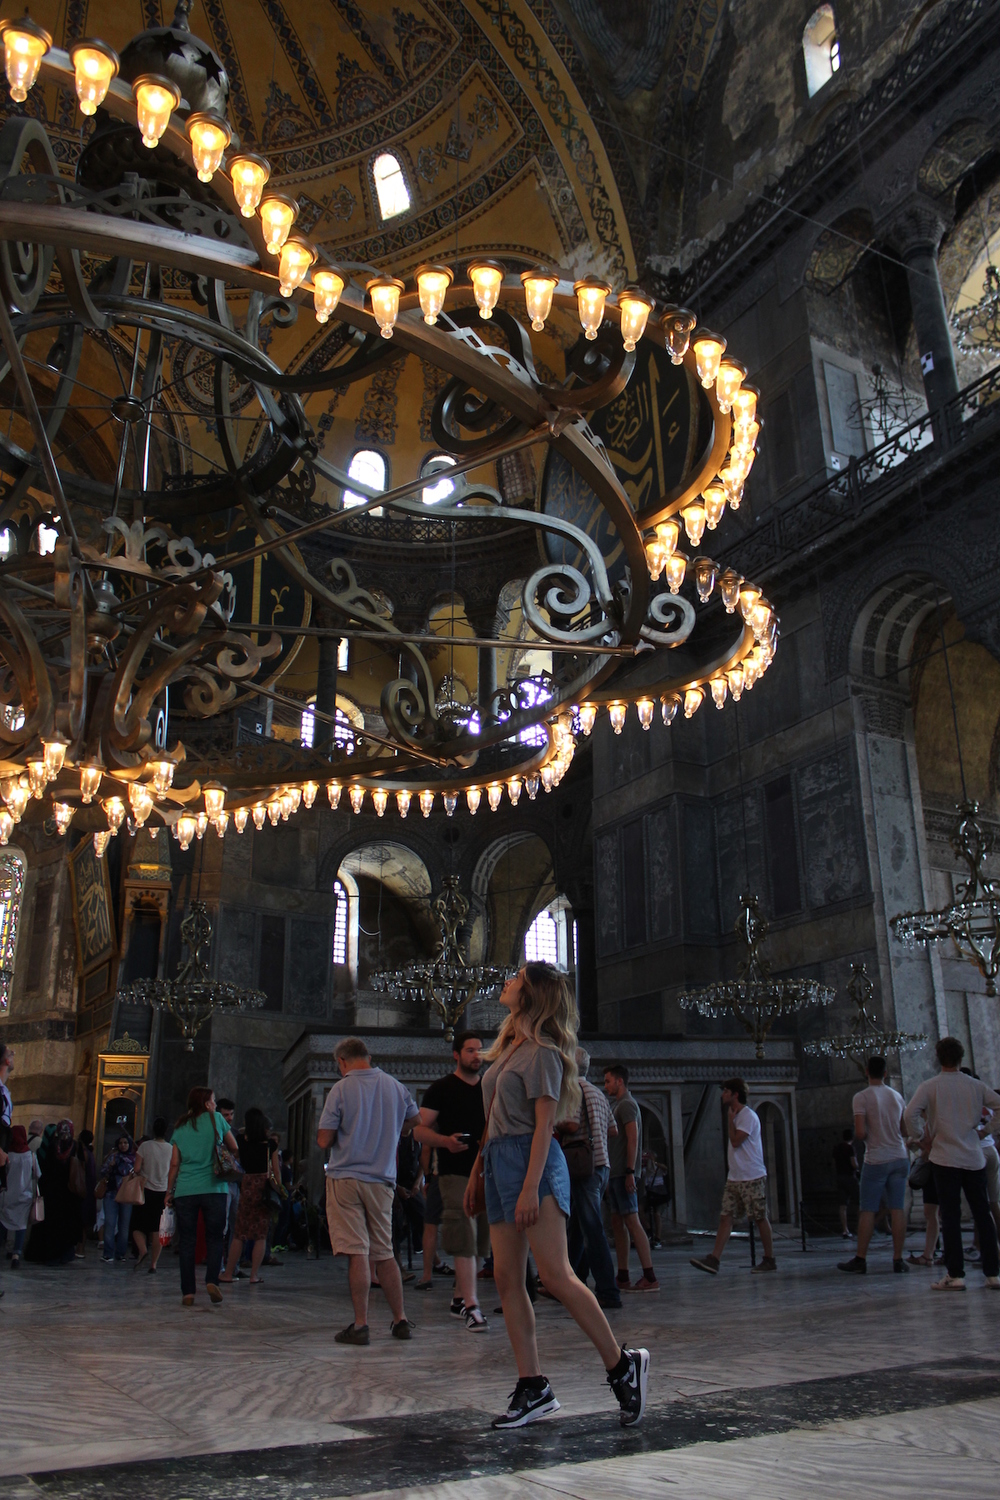 istanbul_istanbul travel guide_travel to istanbul_old city_blue mosque_sightseeing in istandbul_cistern_hagia sophia_fashion blogger_turkish fashion blogger_travel blogger_travel_turkish street style_bazaar in istanbul_best place to eat in istanbul_best restaurant in istanbul_best kabob in istanbul_best club in istanbul_reina_cesme_izmir_bebek_chilai_ortakoy